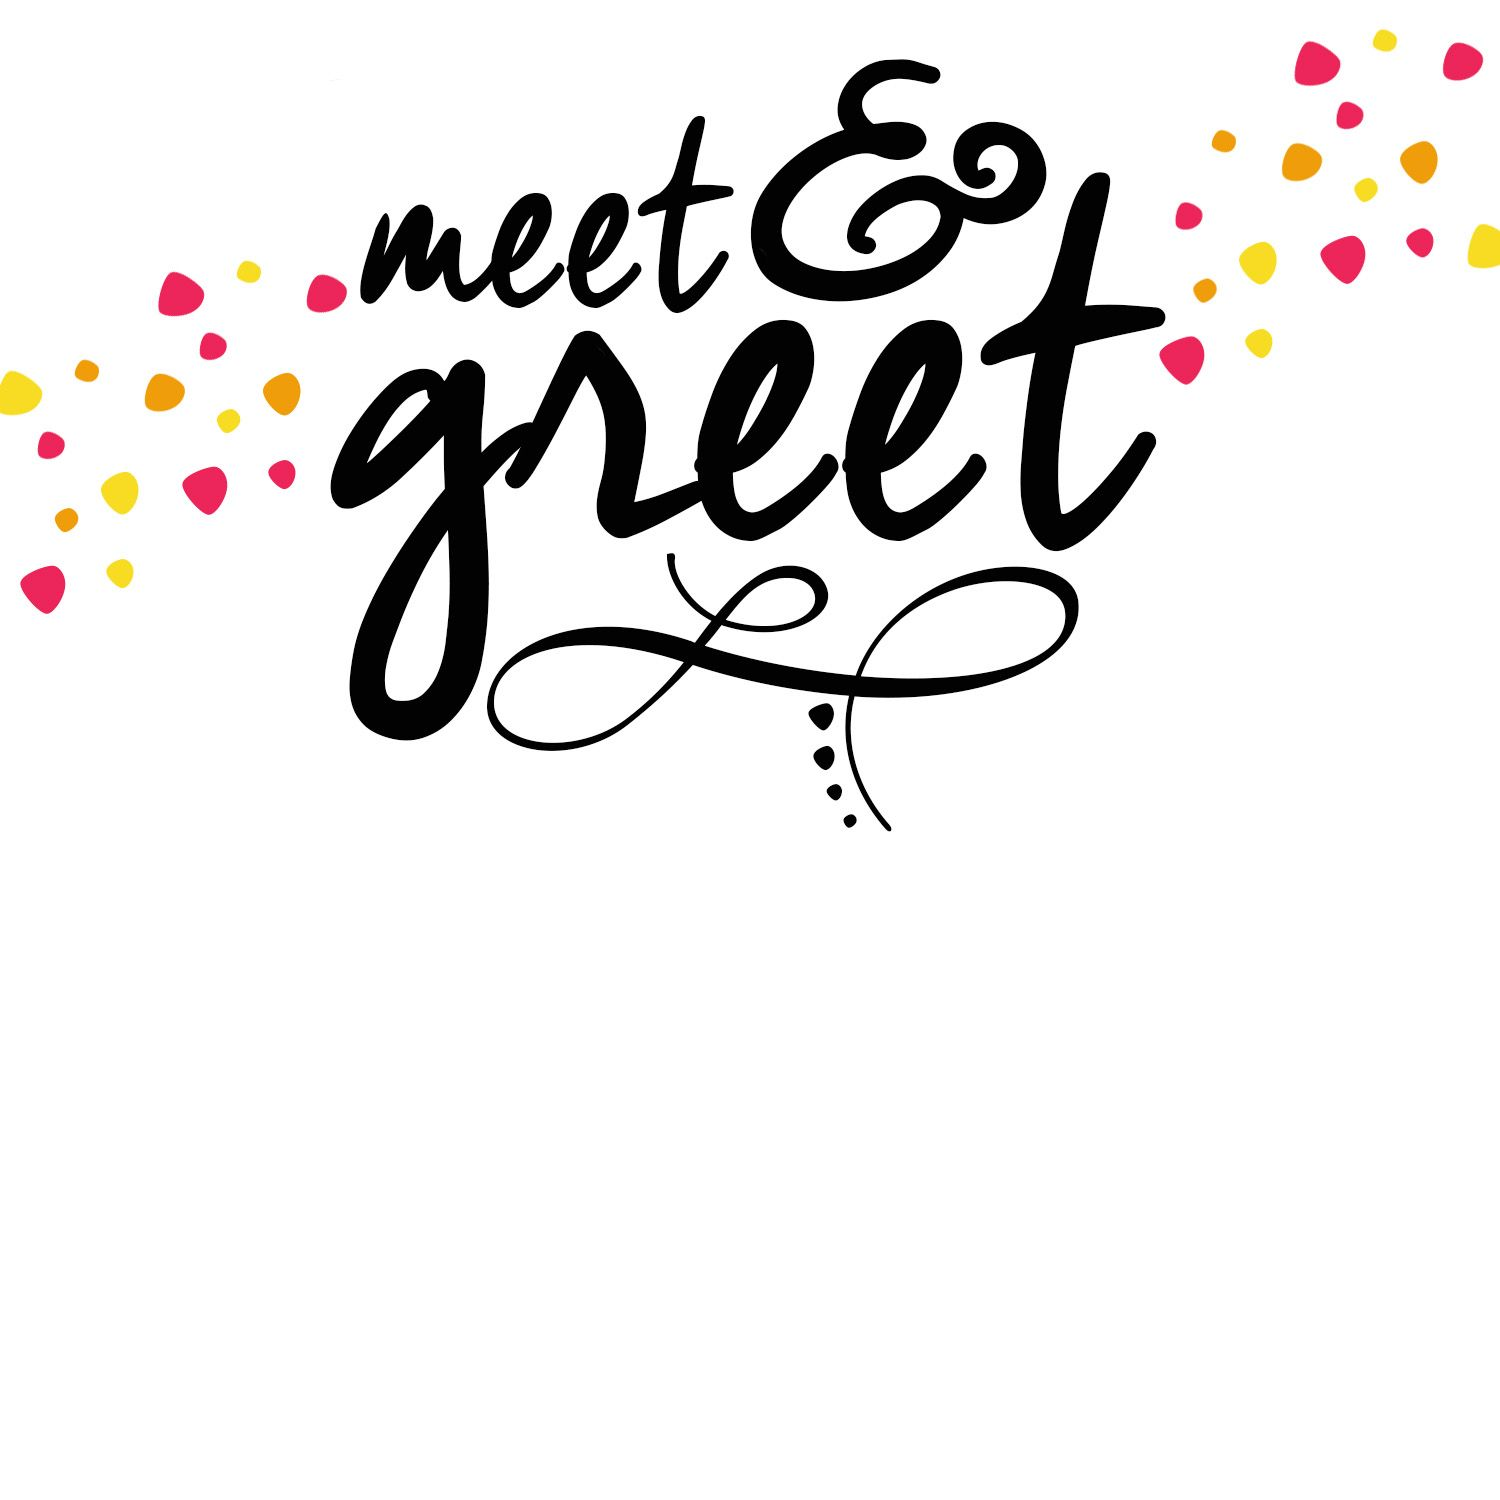 Free meet and greets images greetings card design simple free performance and meet and greet cimorelli november 30 2013 ohio m4hsunfo